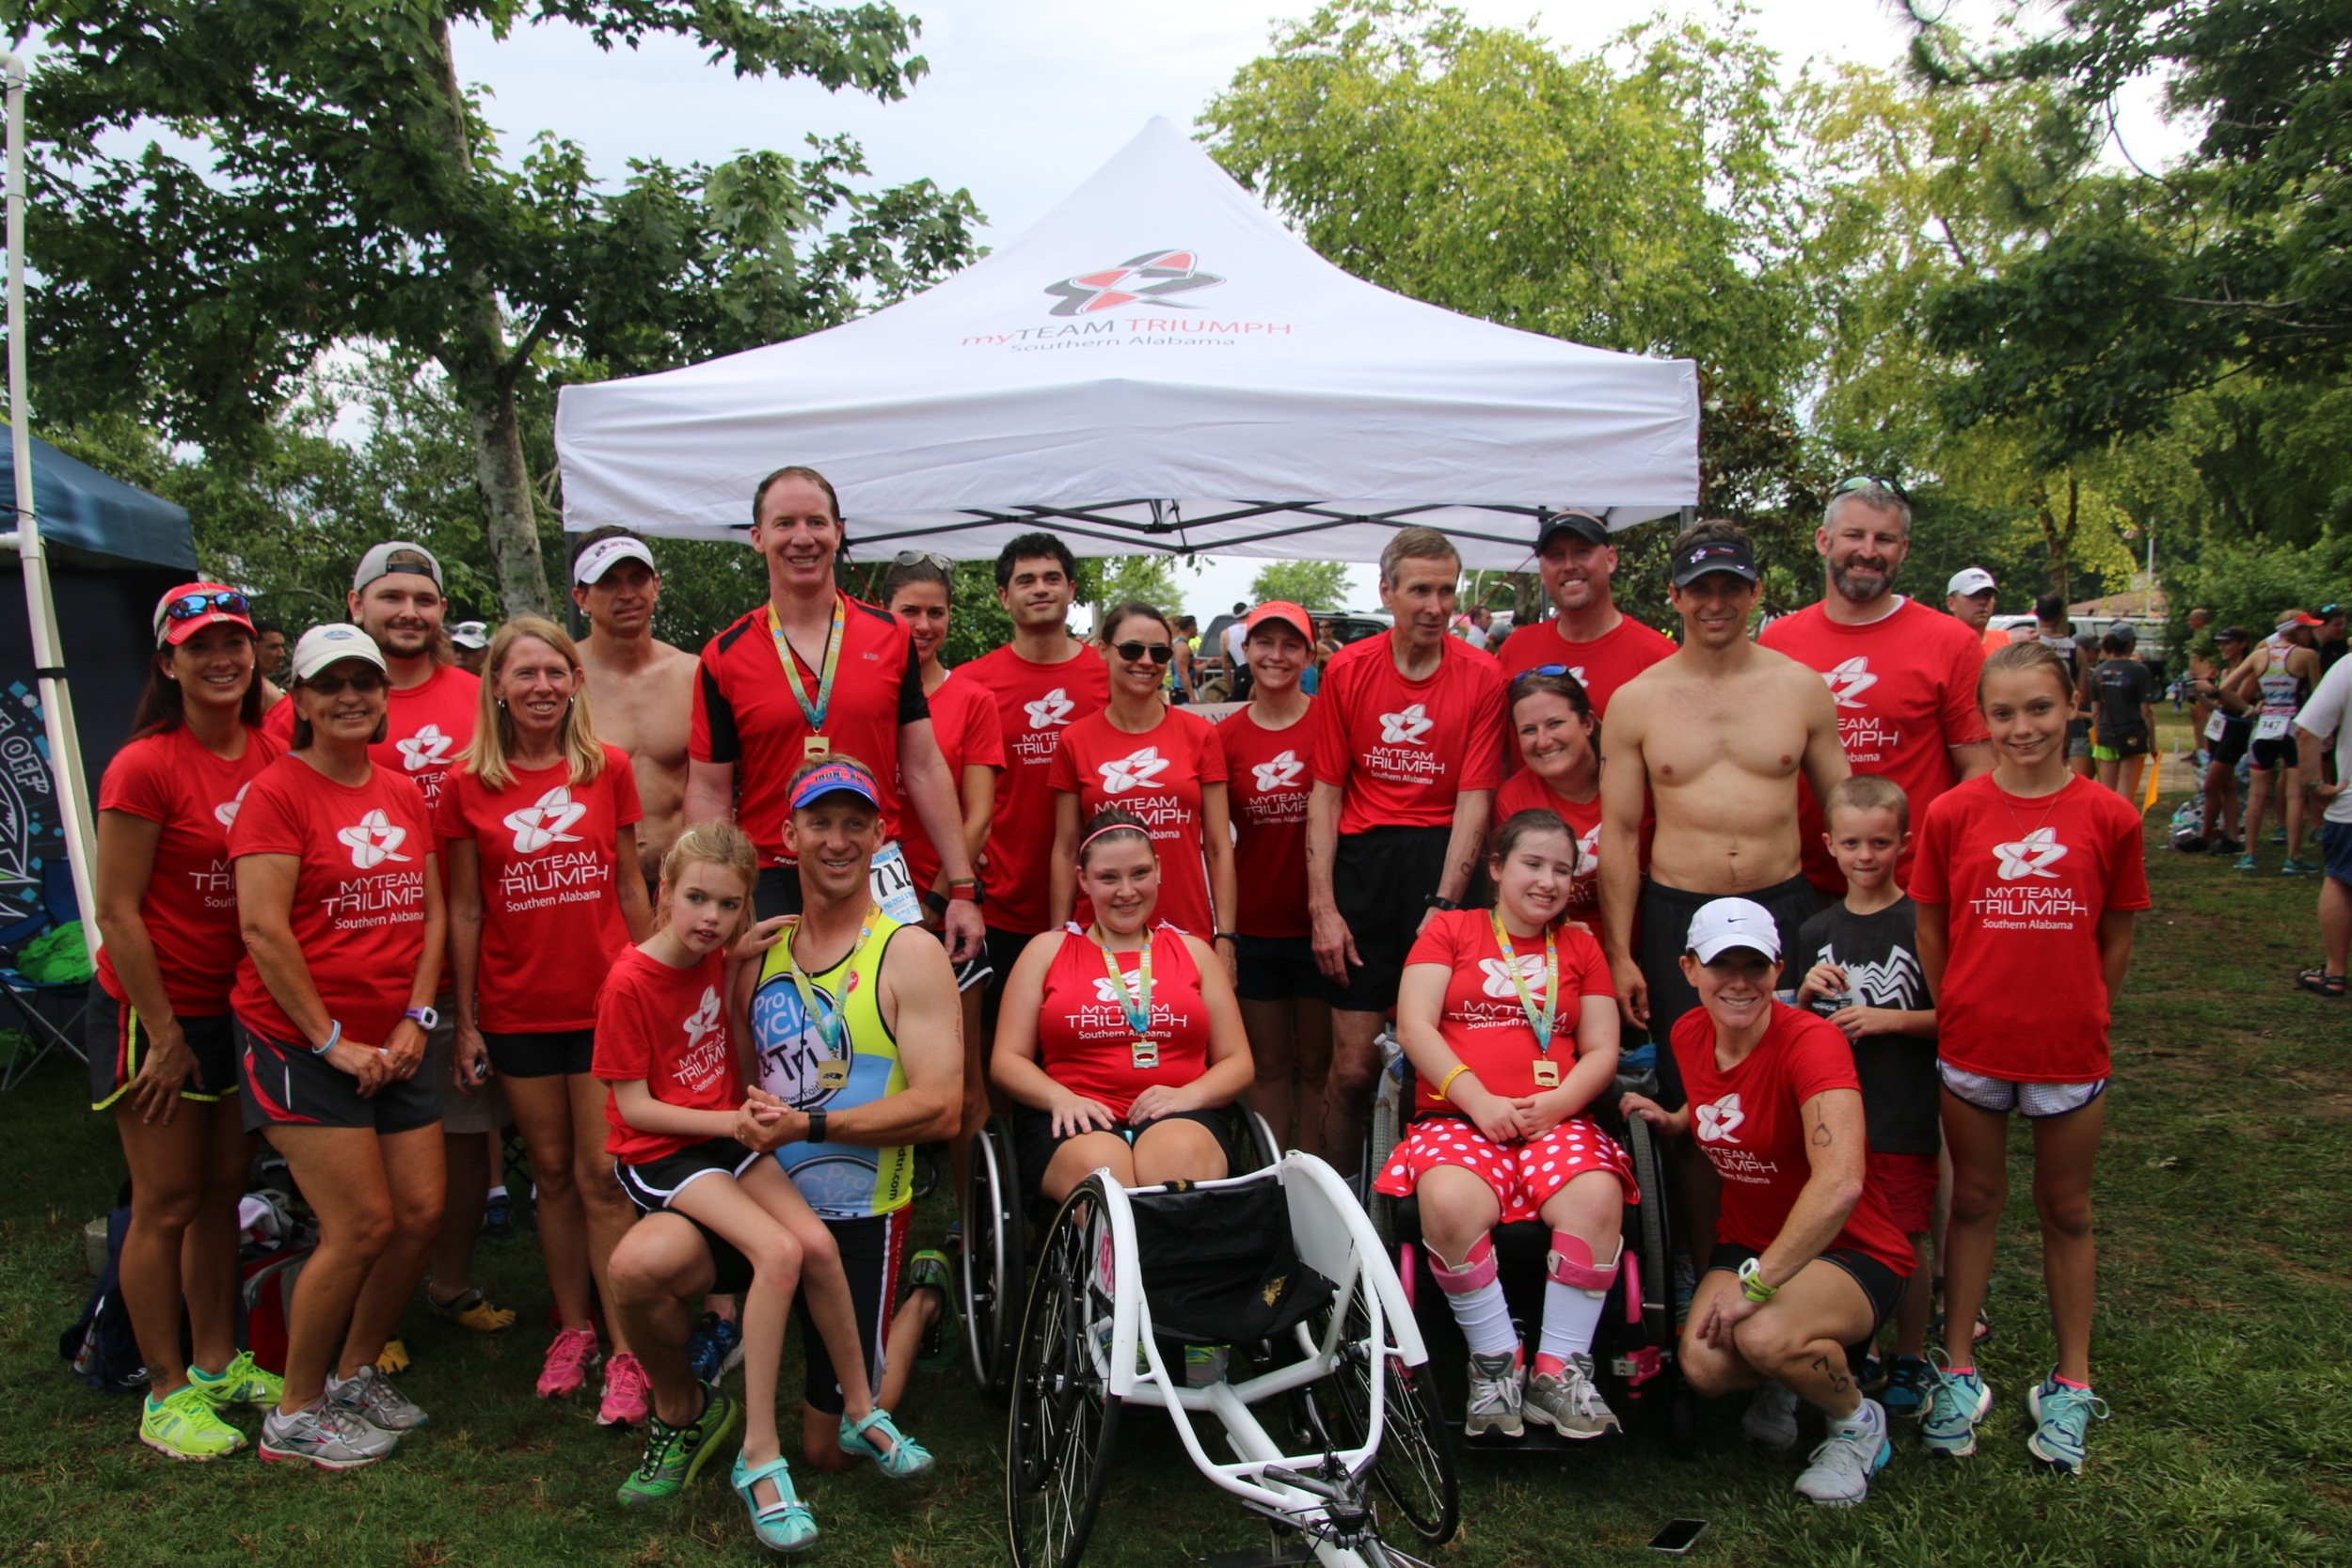 We were thrilled to have myTeam Triumph: Southern Alabama race in the Grandman again this year, with 3 teams participating!